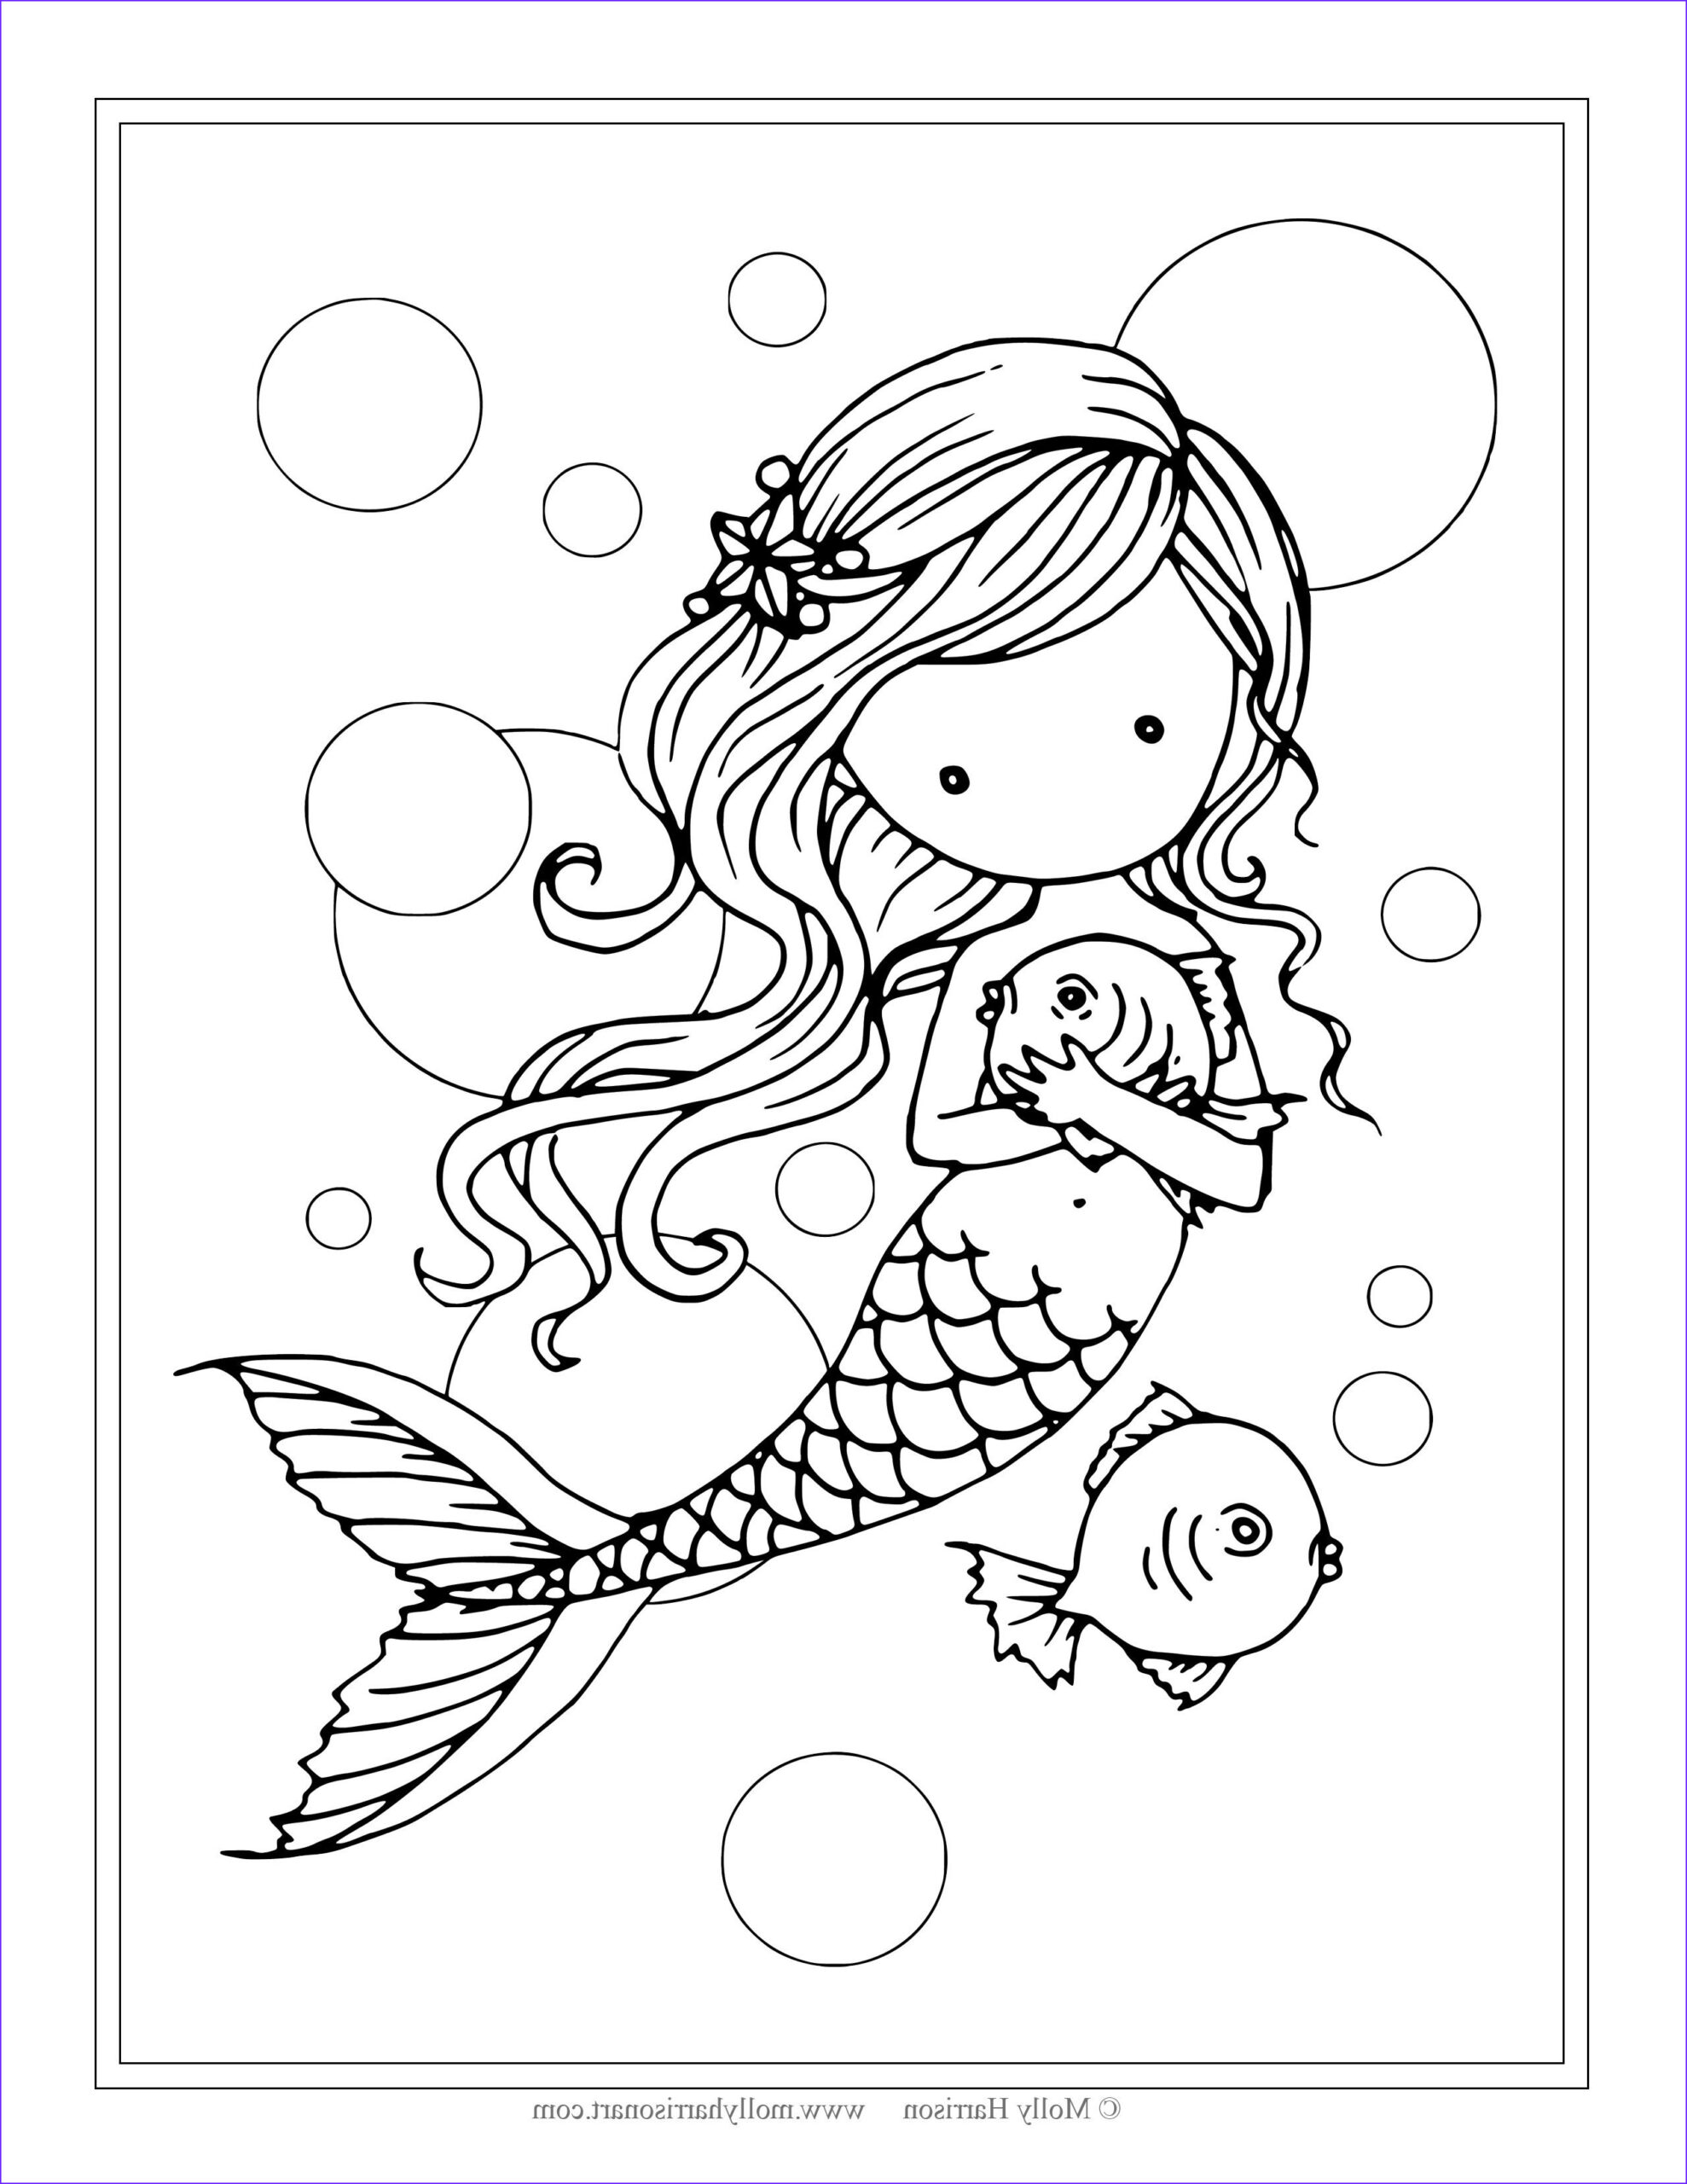 Mermaid Coloring Book Luxury Collection Free Mermaid with Fish Coloring Page by Molly Harrison